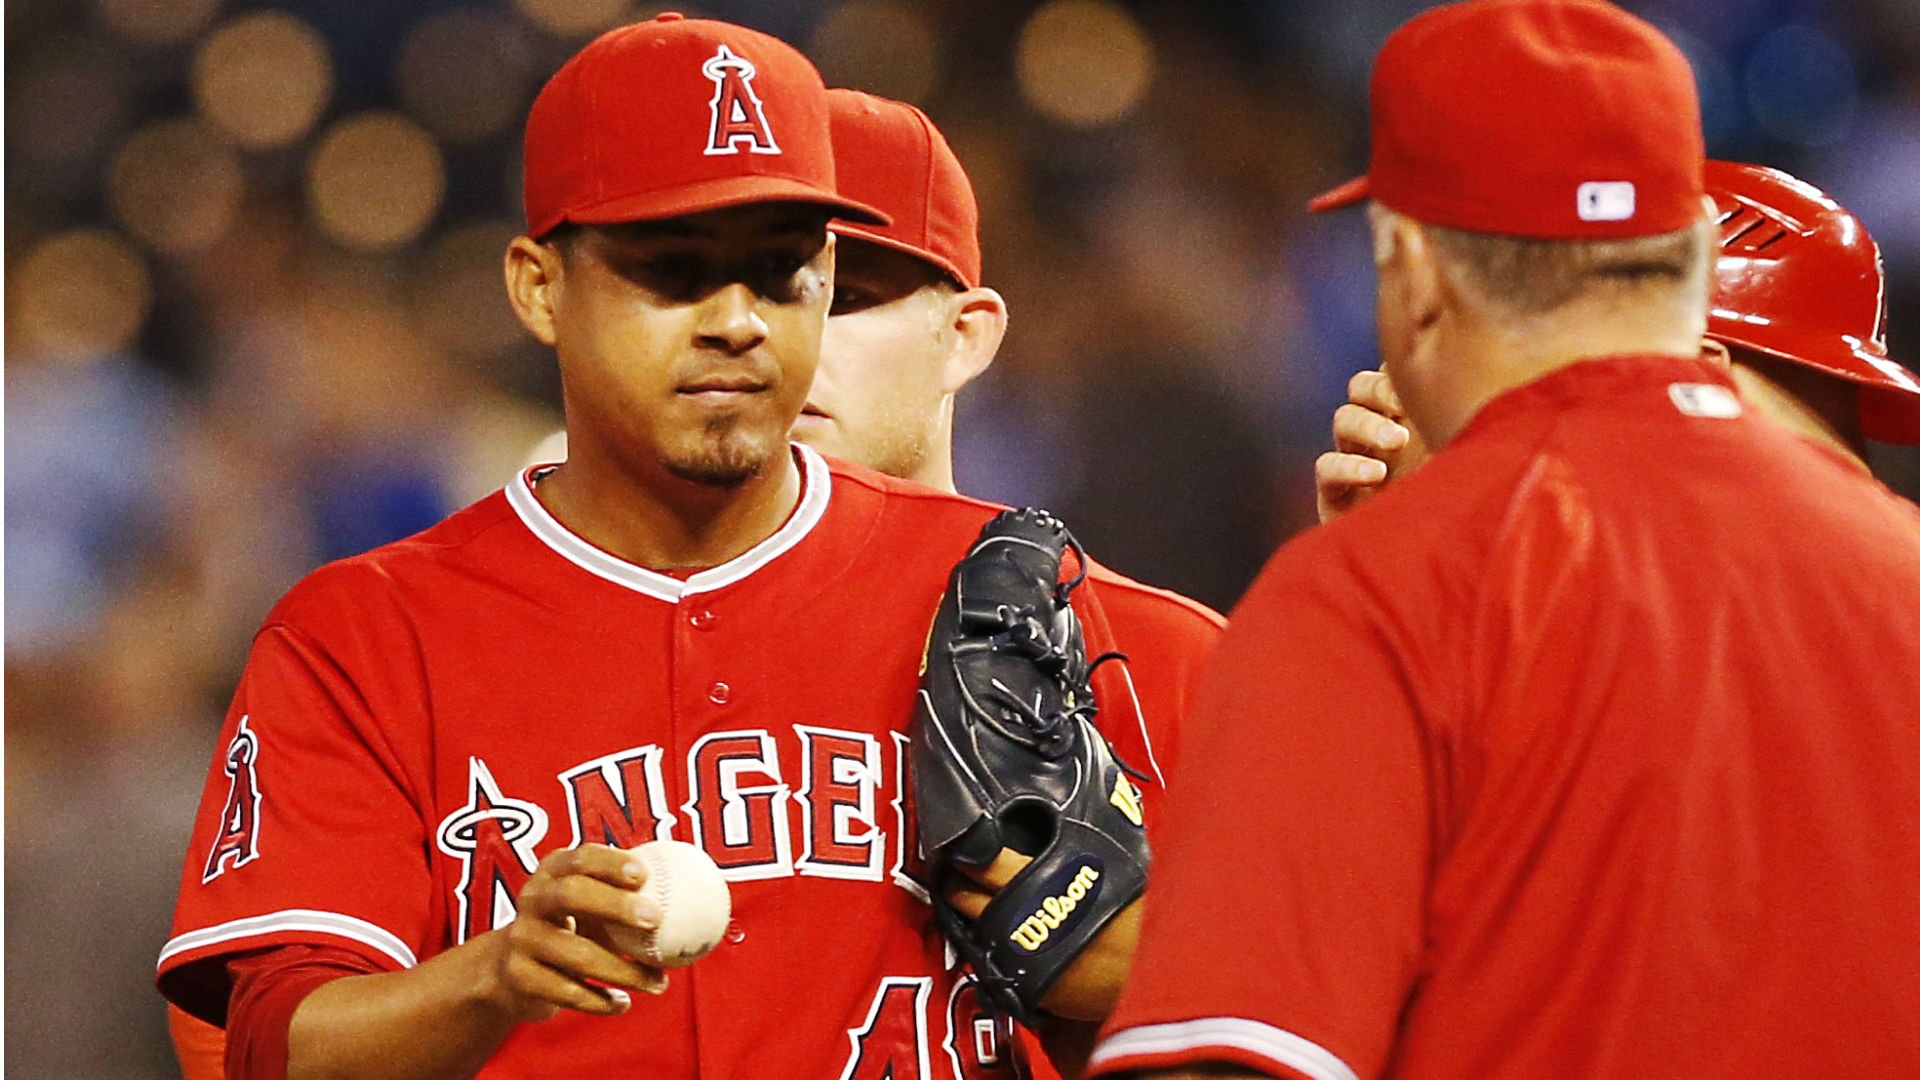 Closer Watch: Angels' Frieri putting fantasy baseball owners through hell